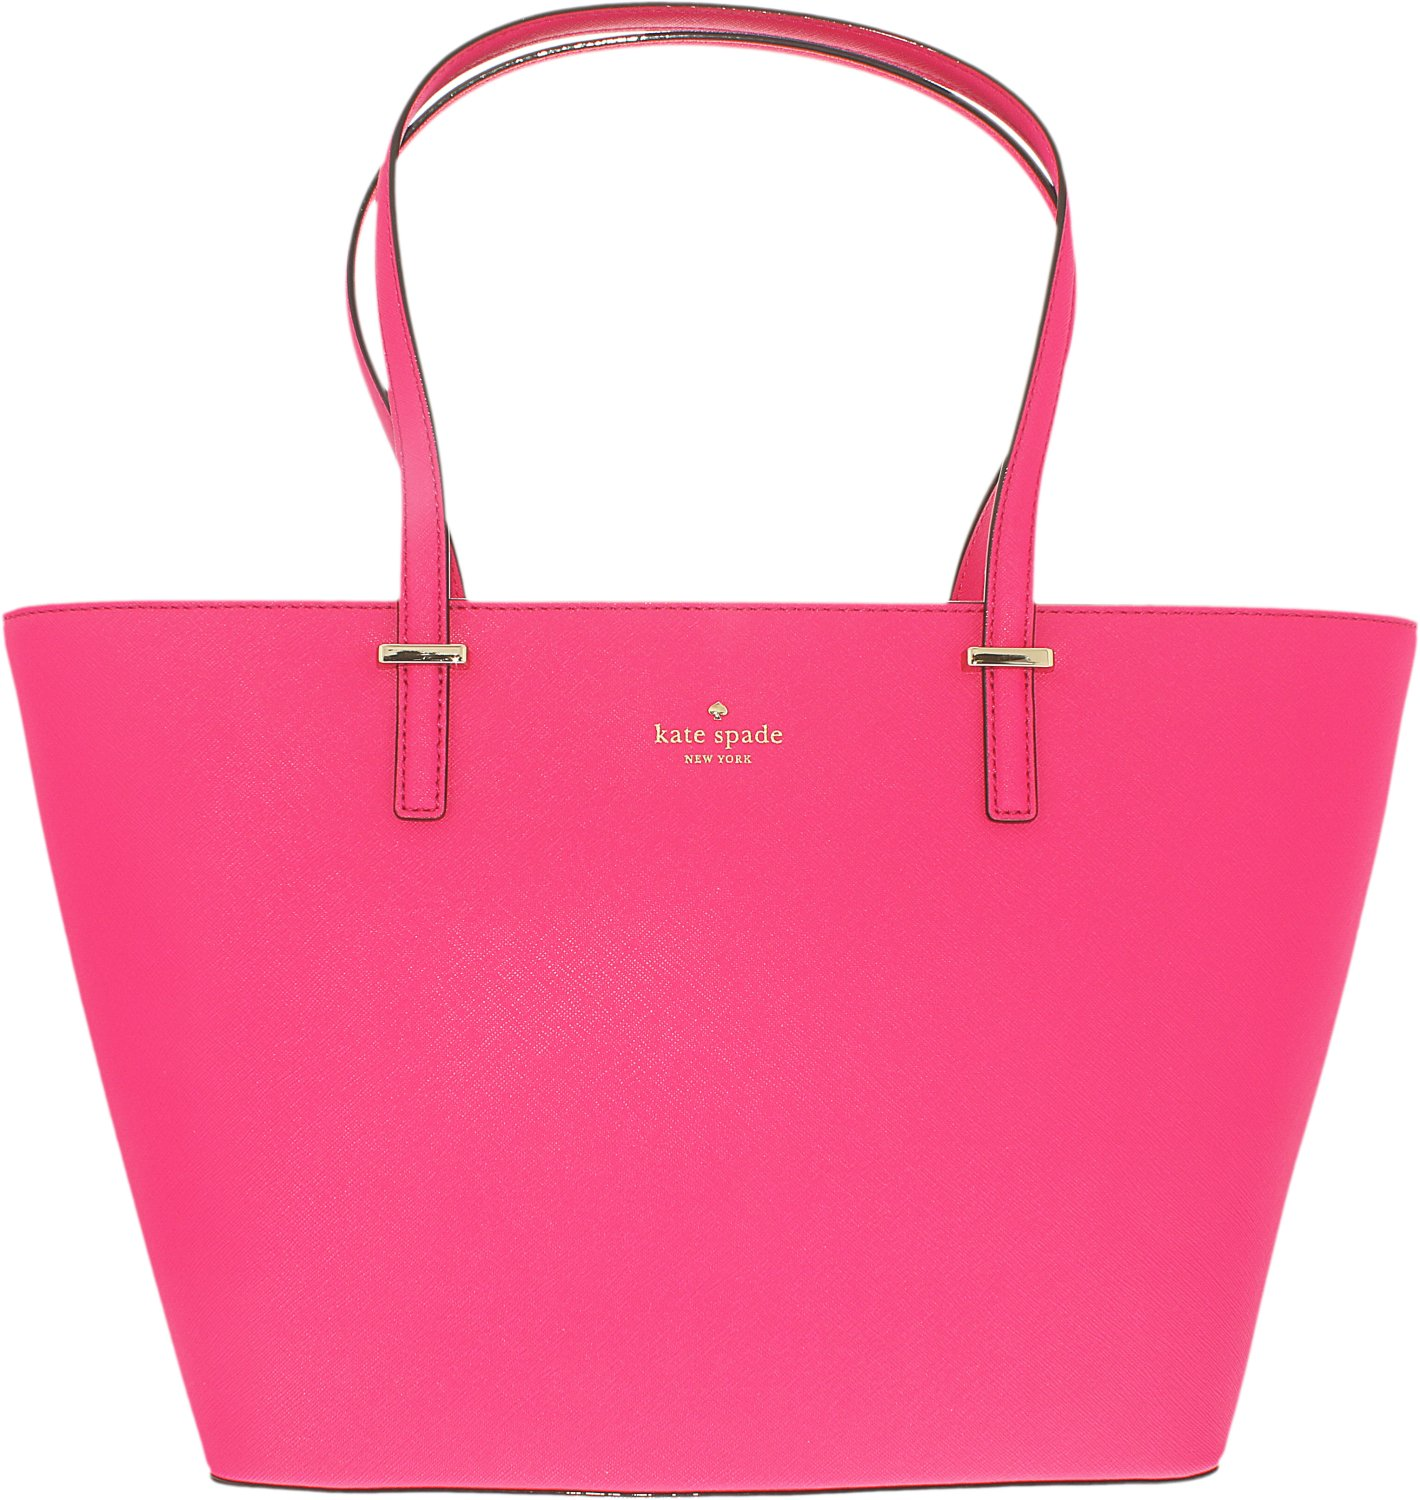 ff94a6caf Who Created Kate Spade Kate Spade Necklaces Amazon | Tenders Portal